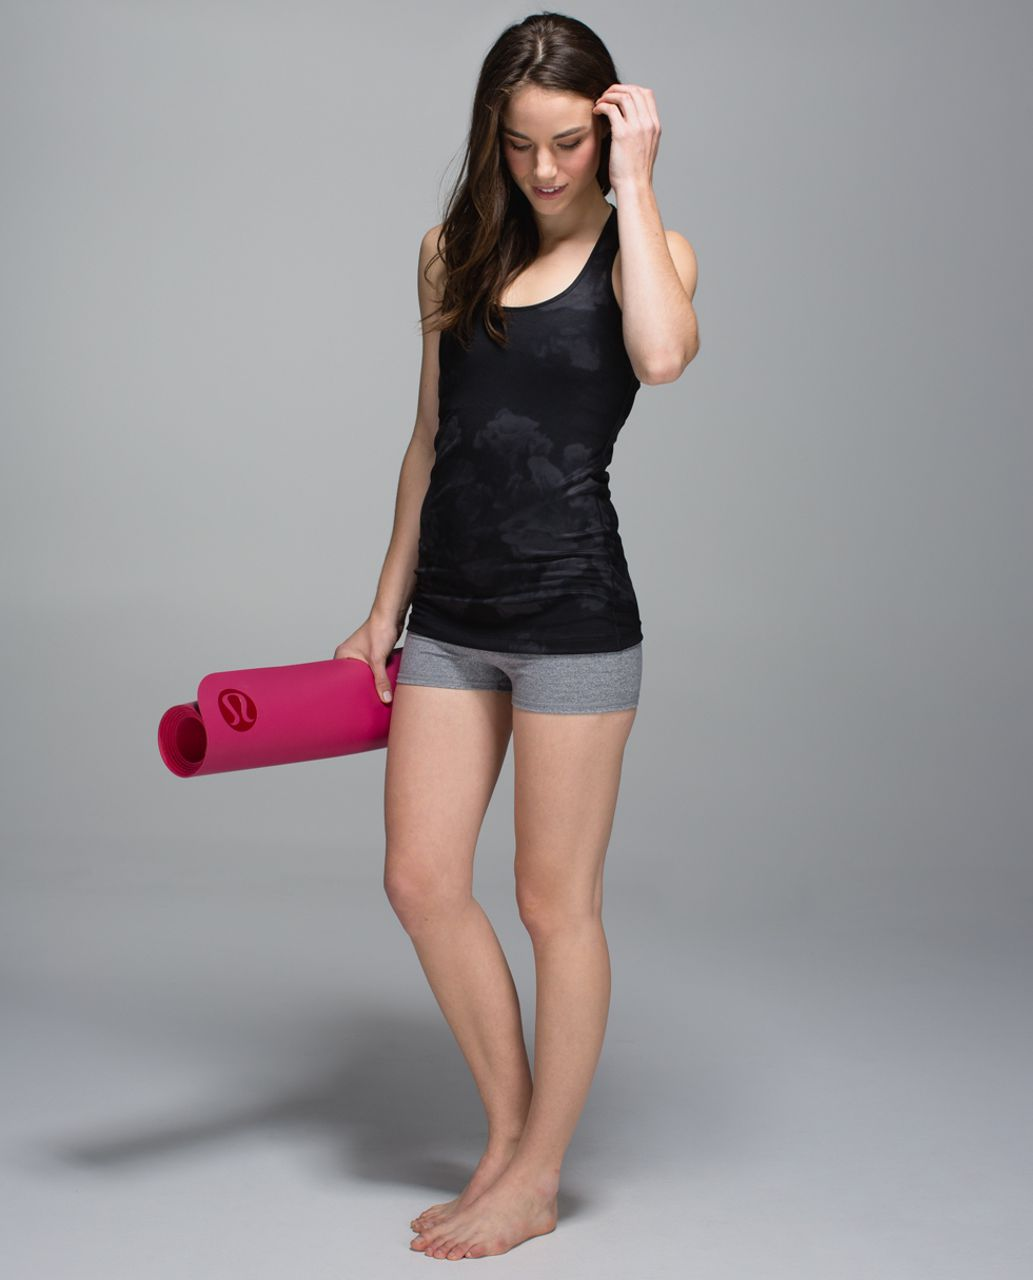 Lululemon Cool Racerback - Dream Rose Deep Coal Black